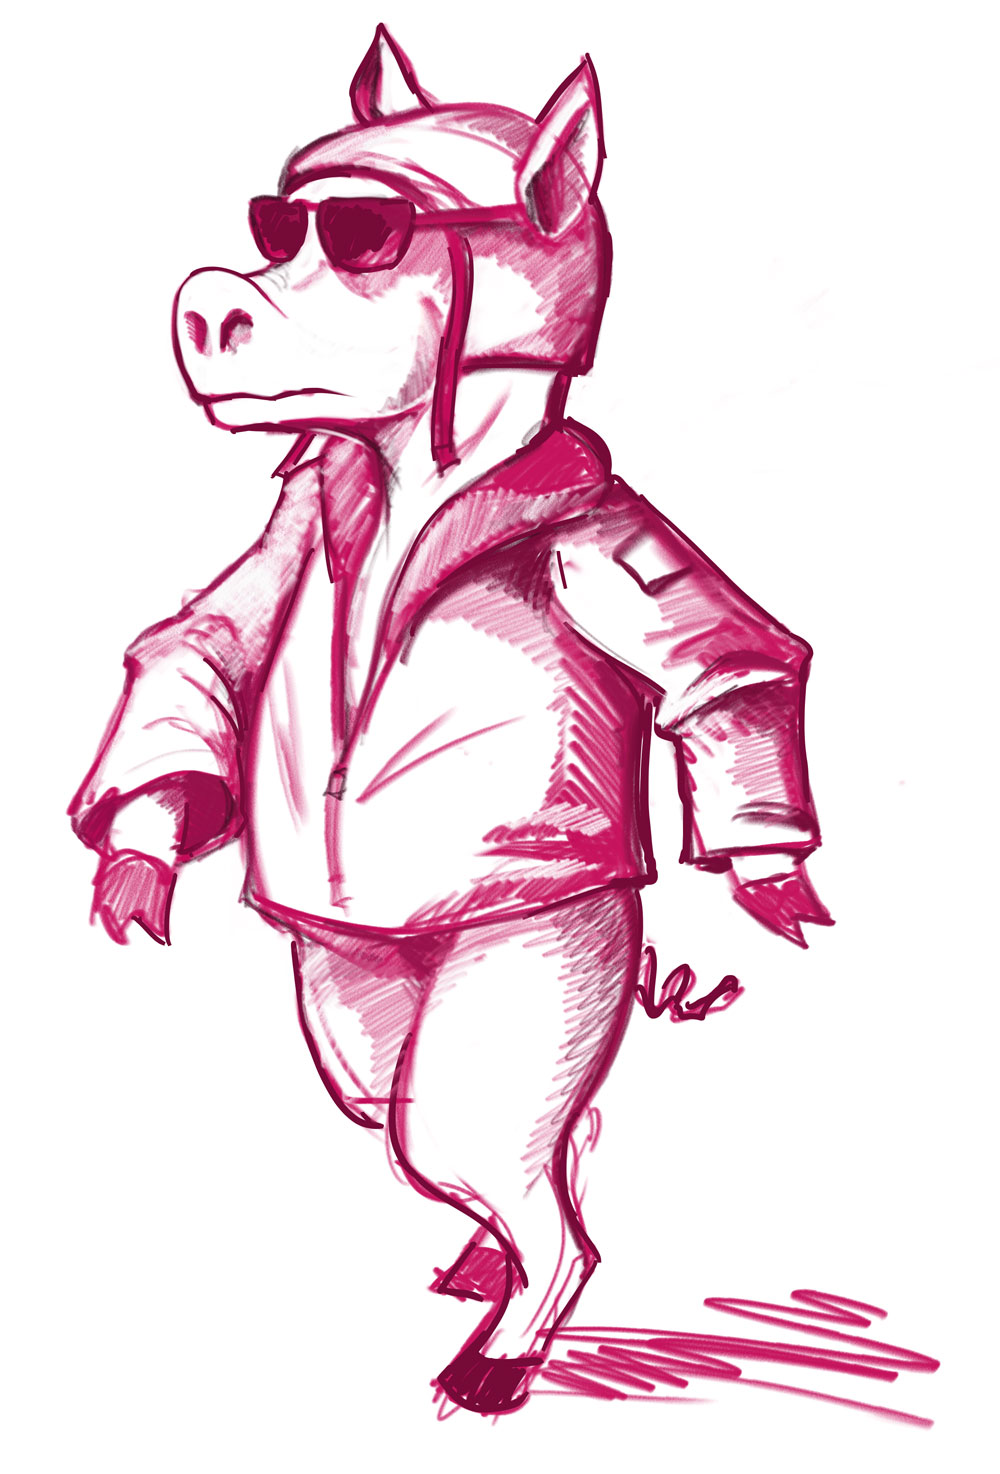 Pig in flight suit